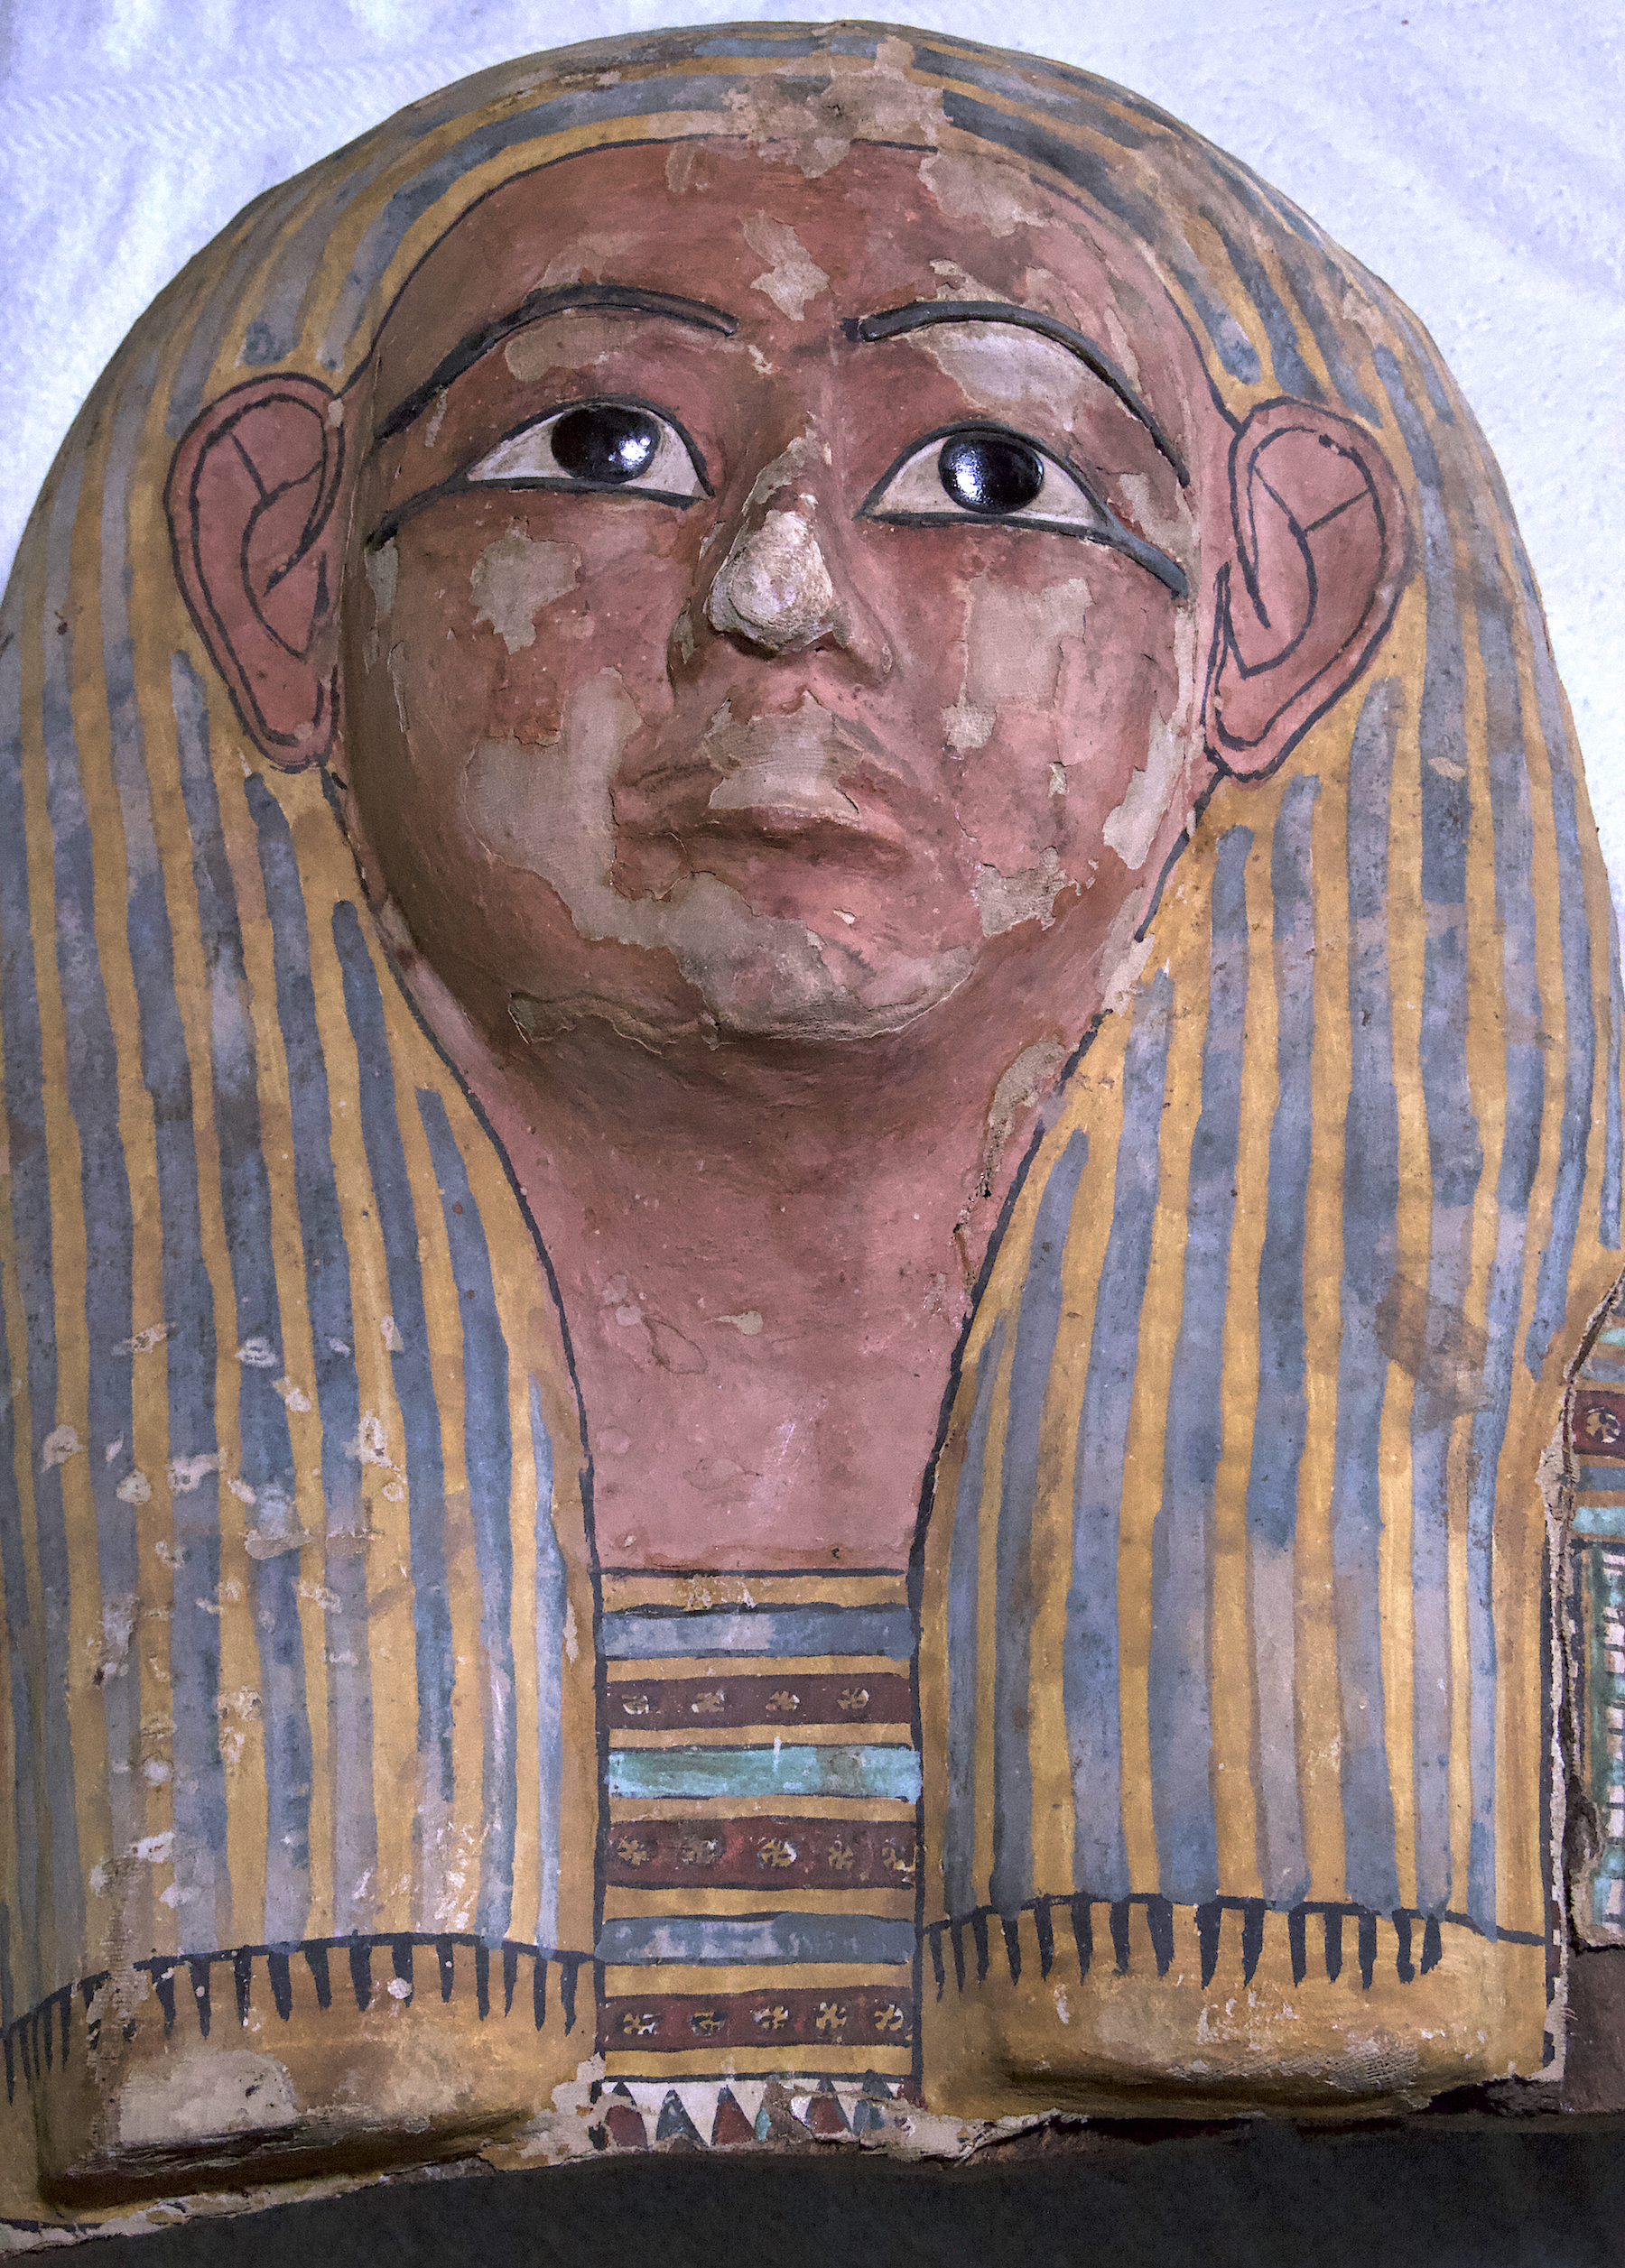 Egyptian Mask, private collection